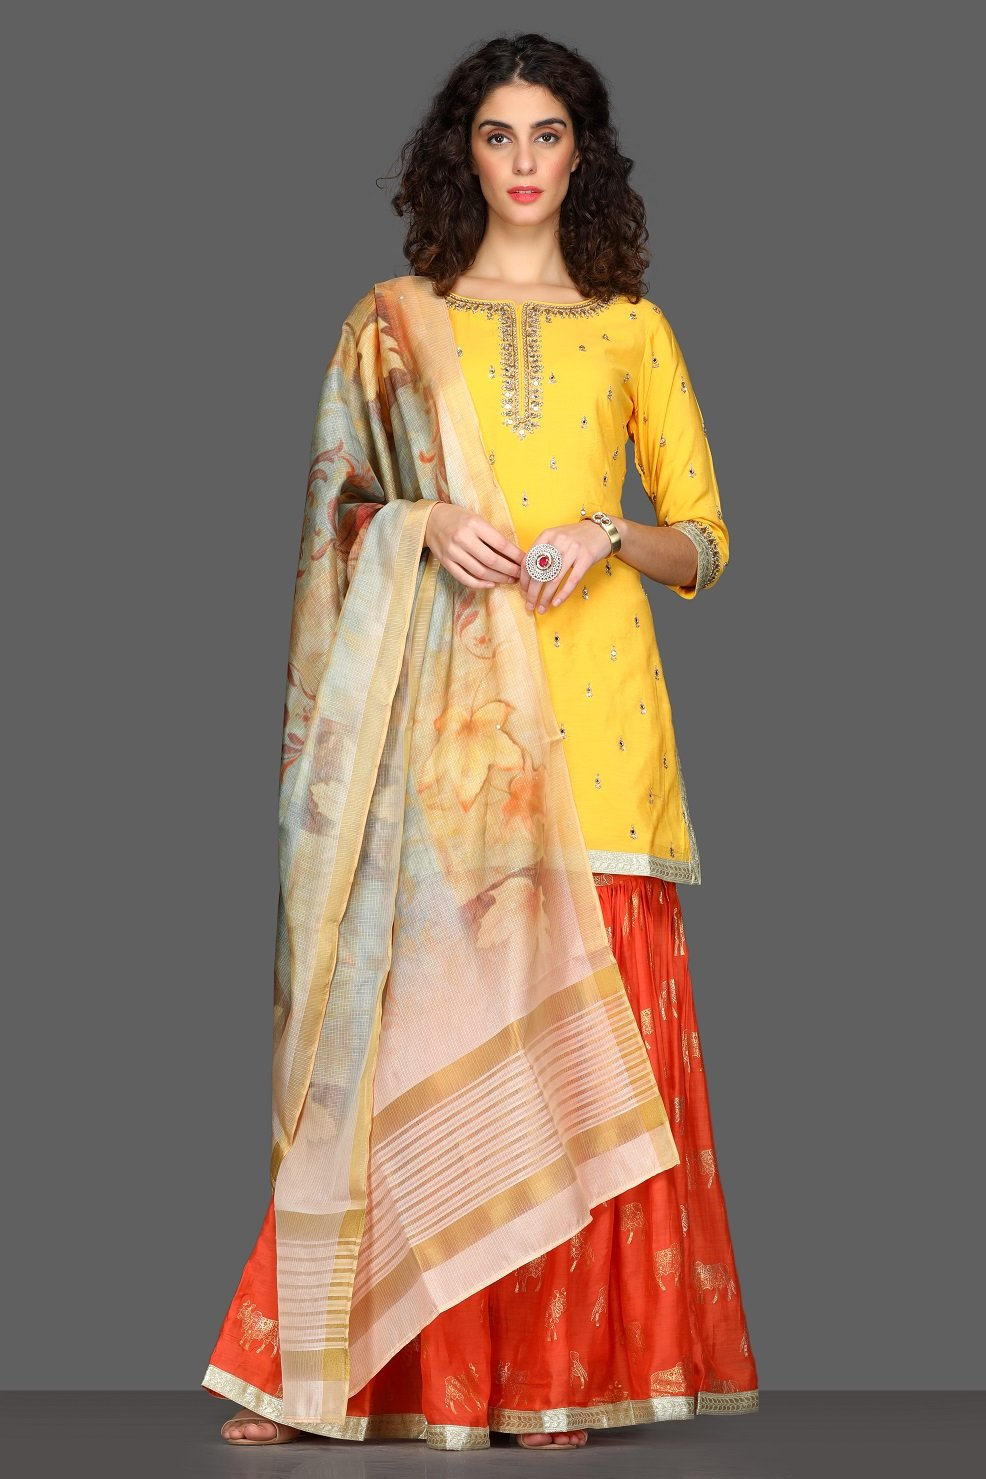 Buy bright yellow and red embroidered sharara suit online in USA with printed dupatta. Dazzle on weddings and special occasions with exquisite Indian designer dresses, sharara suits, Anarkali suits from Pure Elegance Indian fashion store in USA.-full view